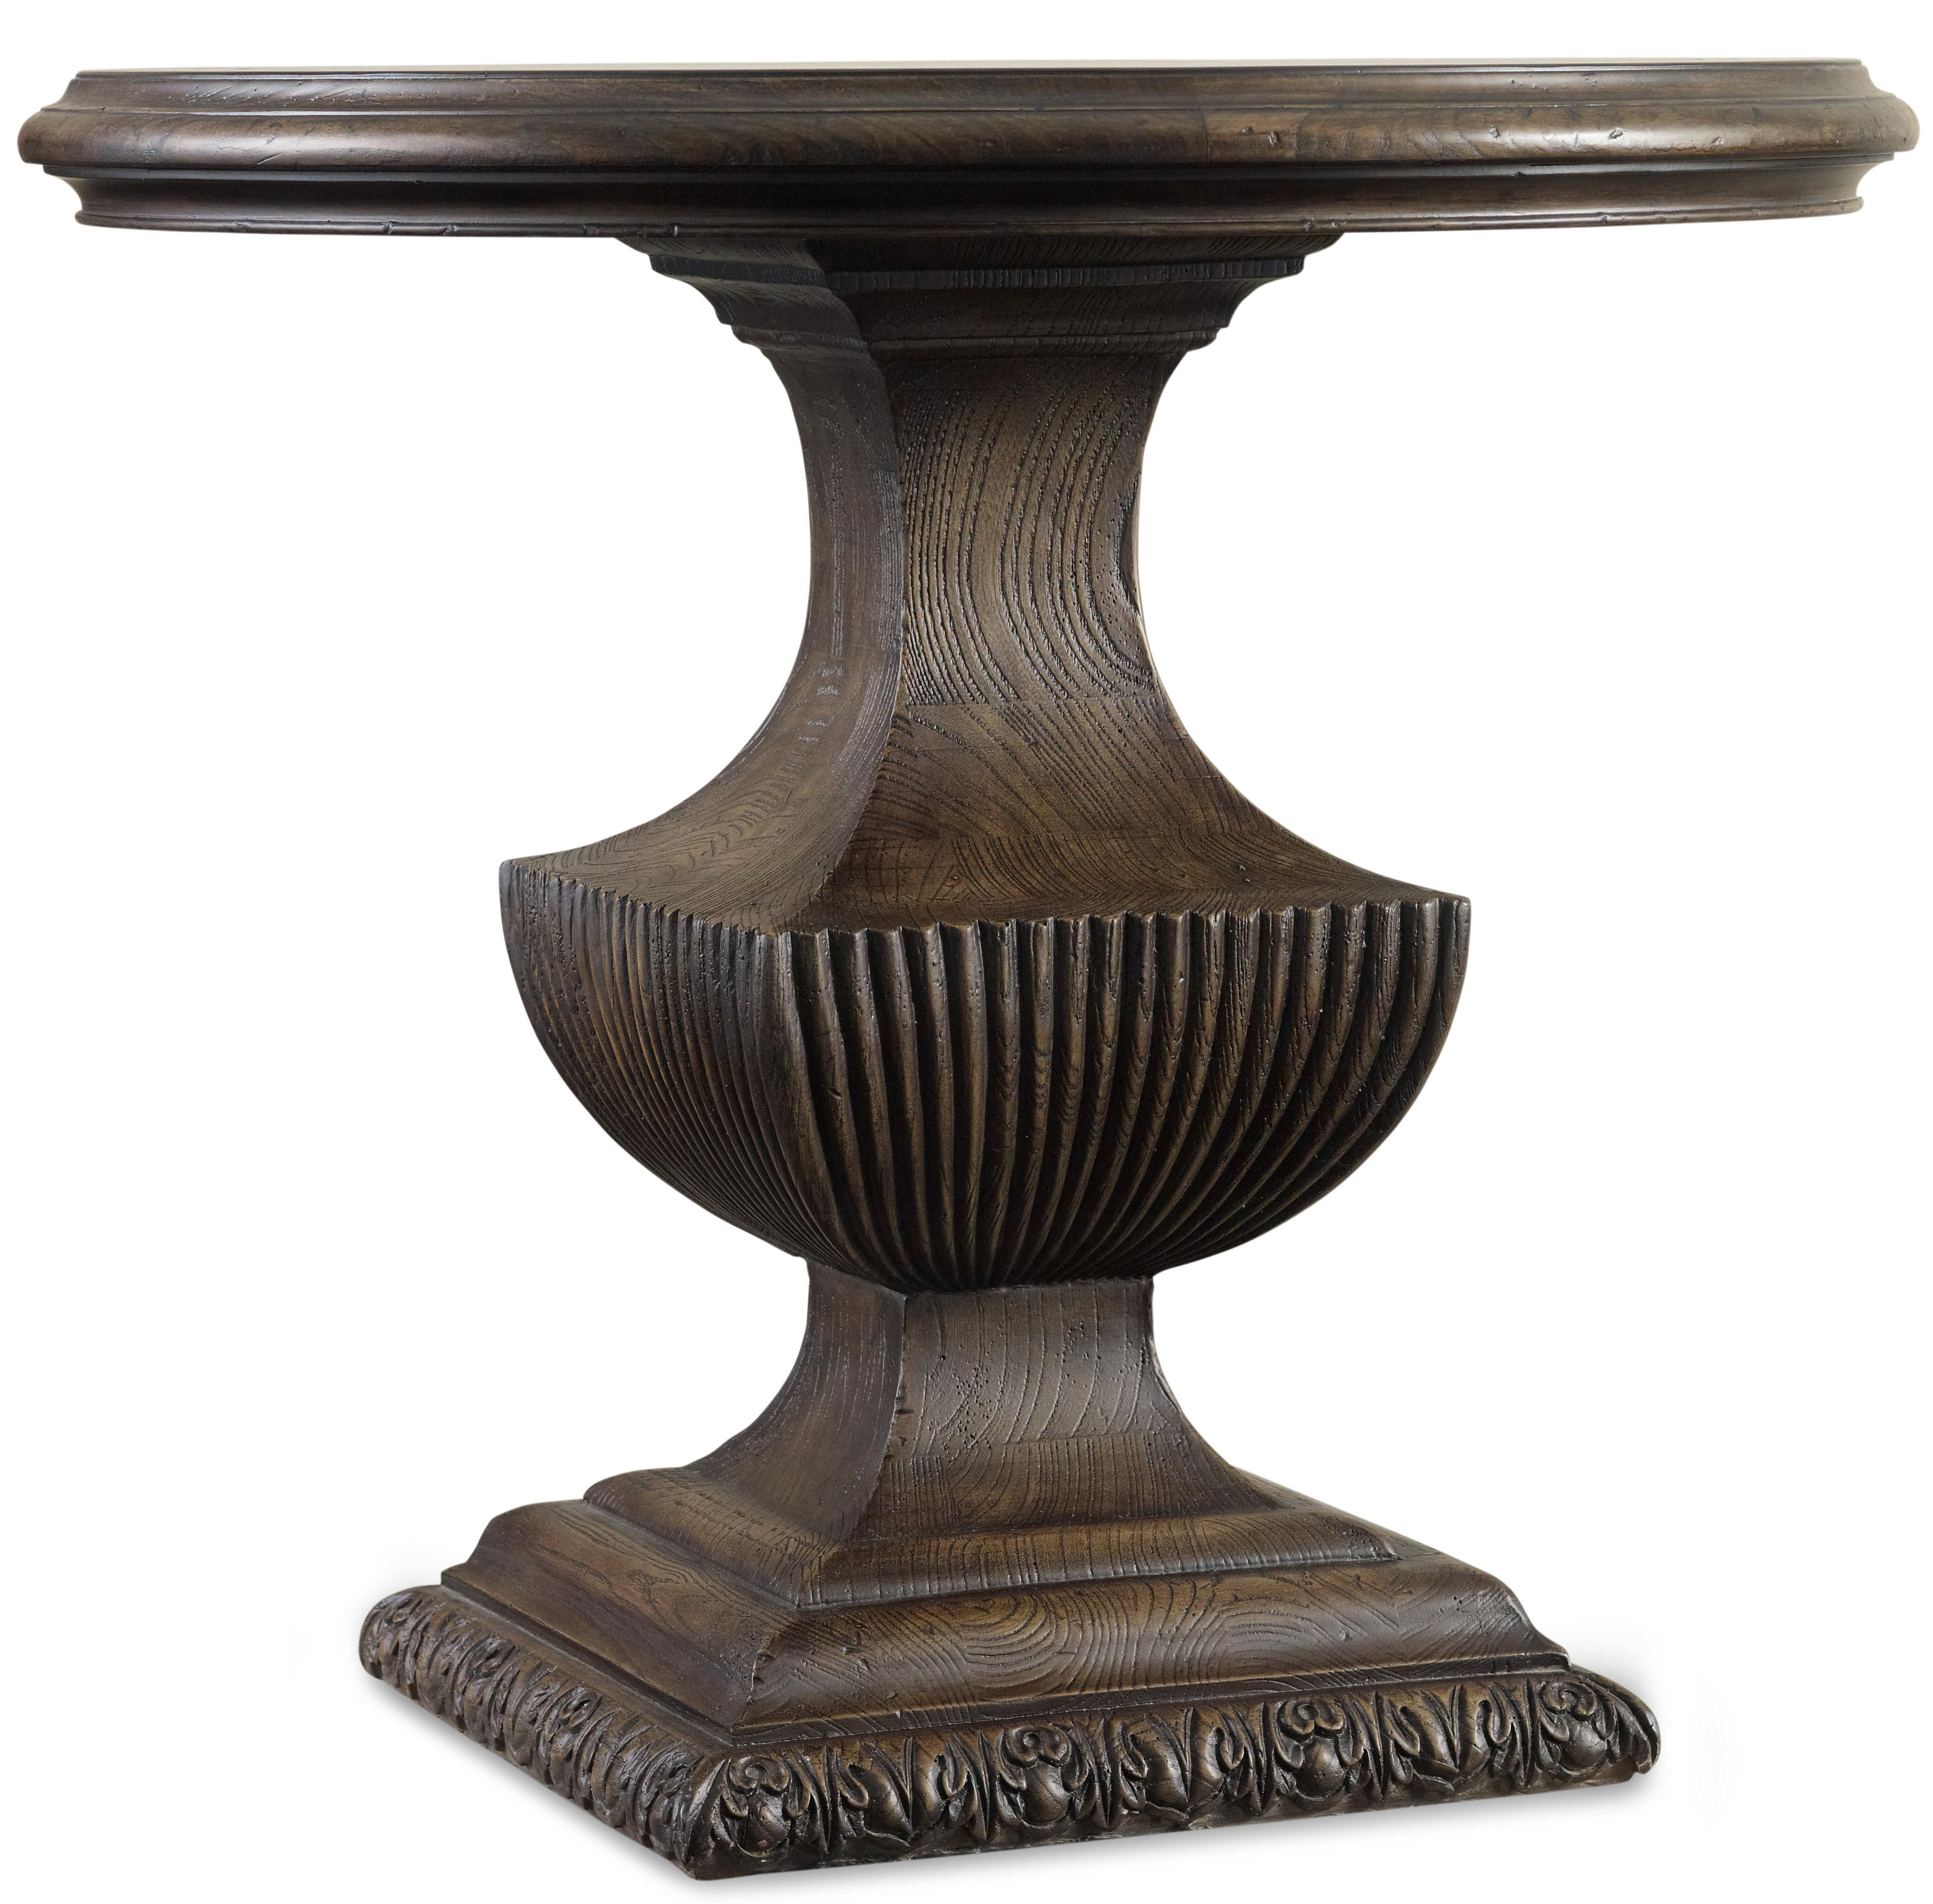 Urn Pedestal Table